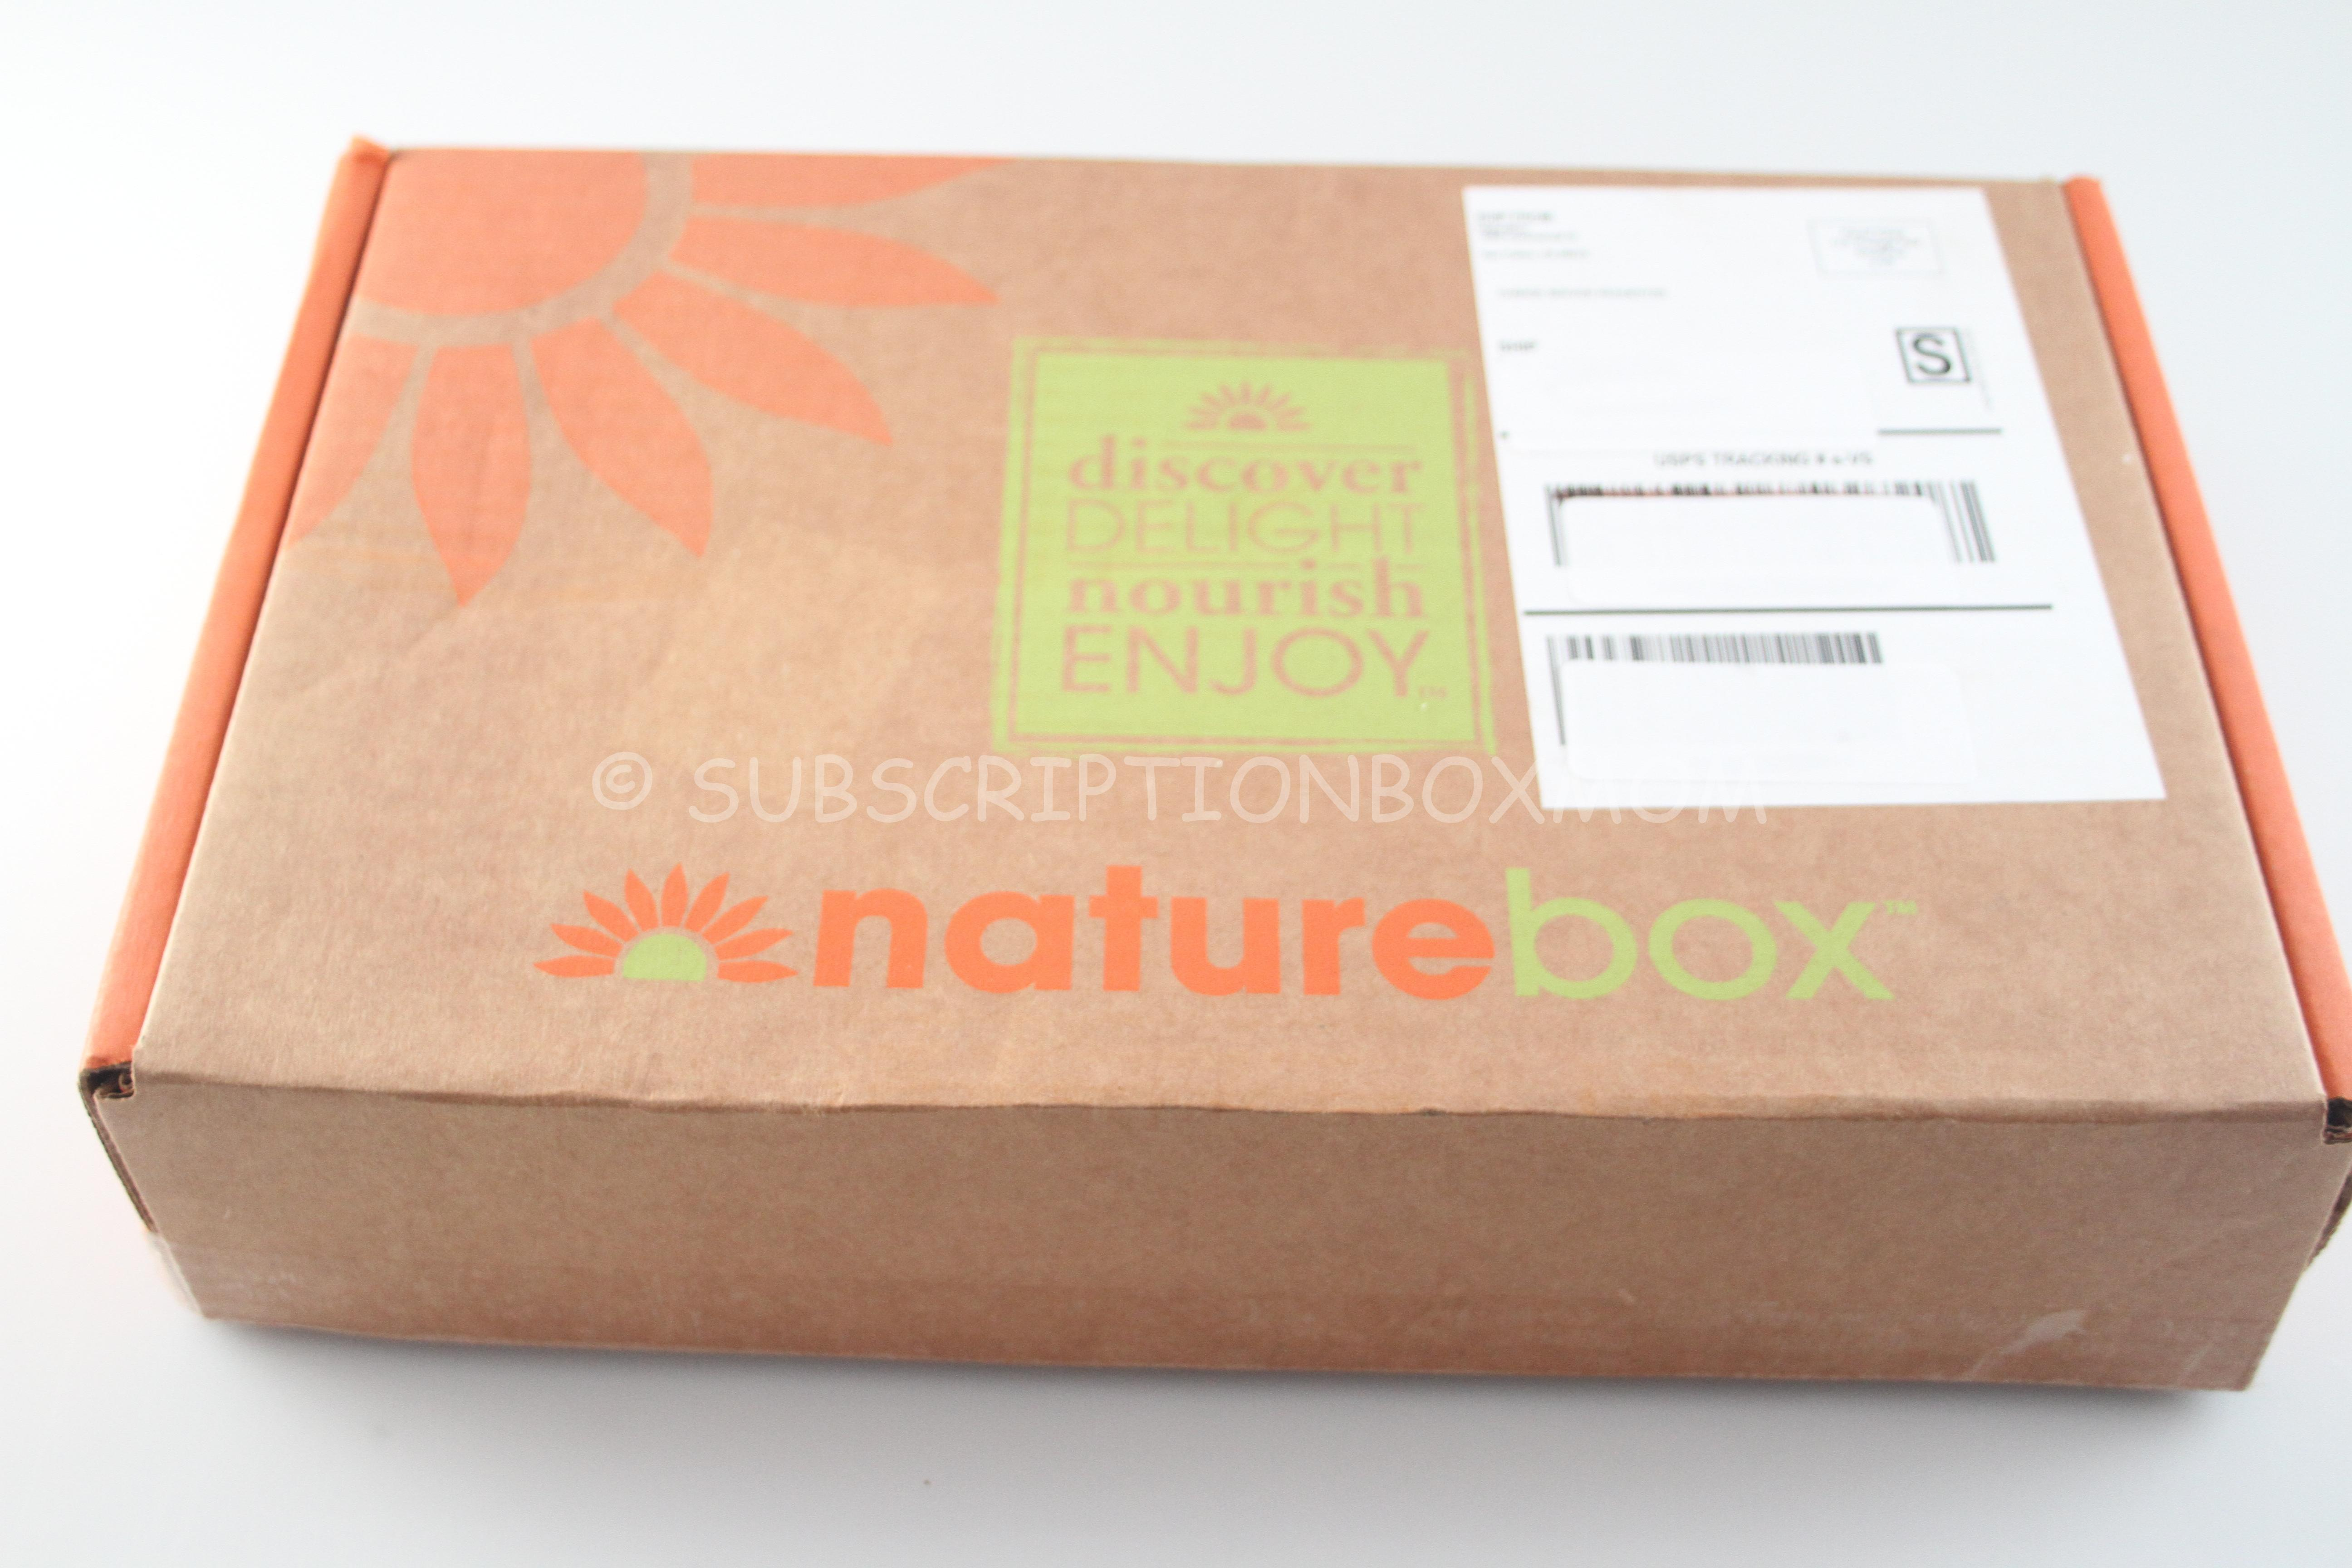 Naturebox August 2014 Review + Free Trial - Snack Subscription Box ...